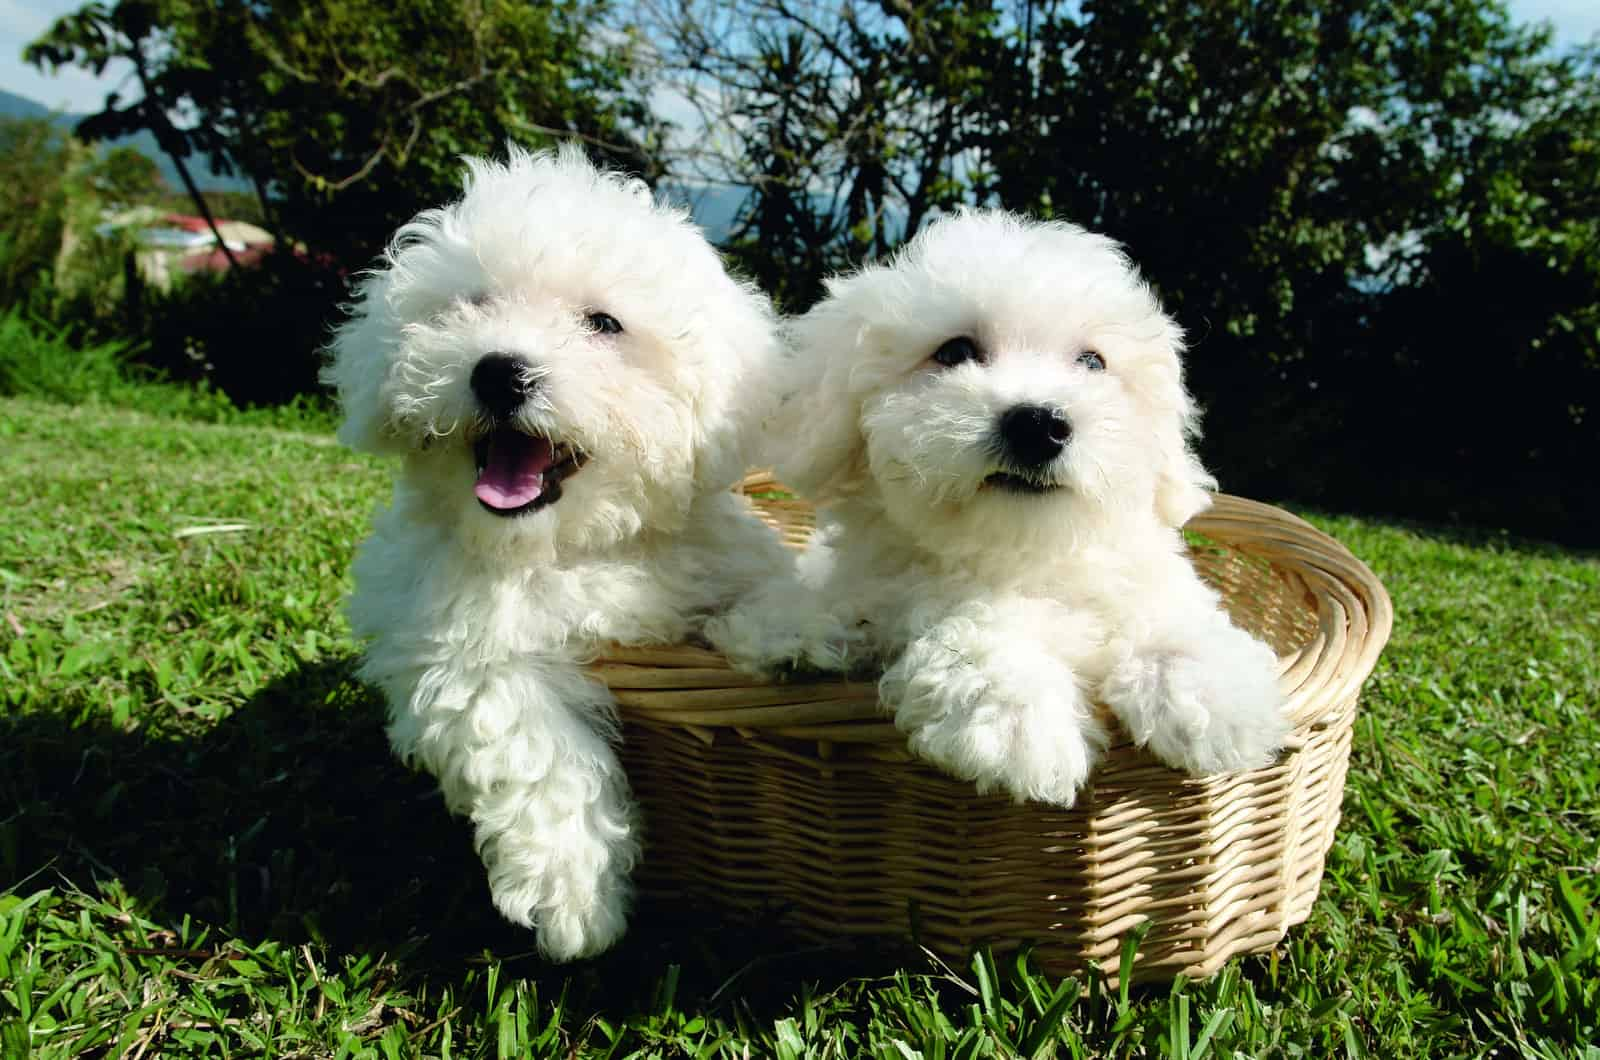 two bichon frise dogs in a basket